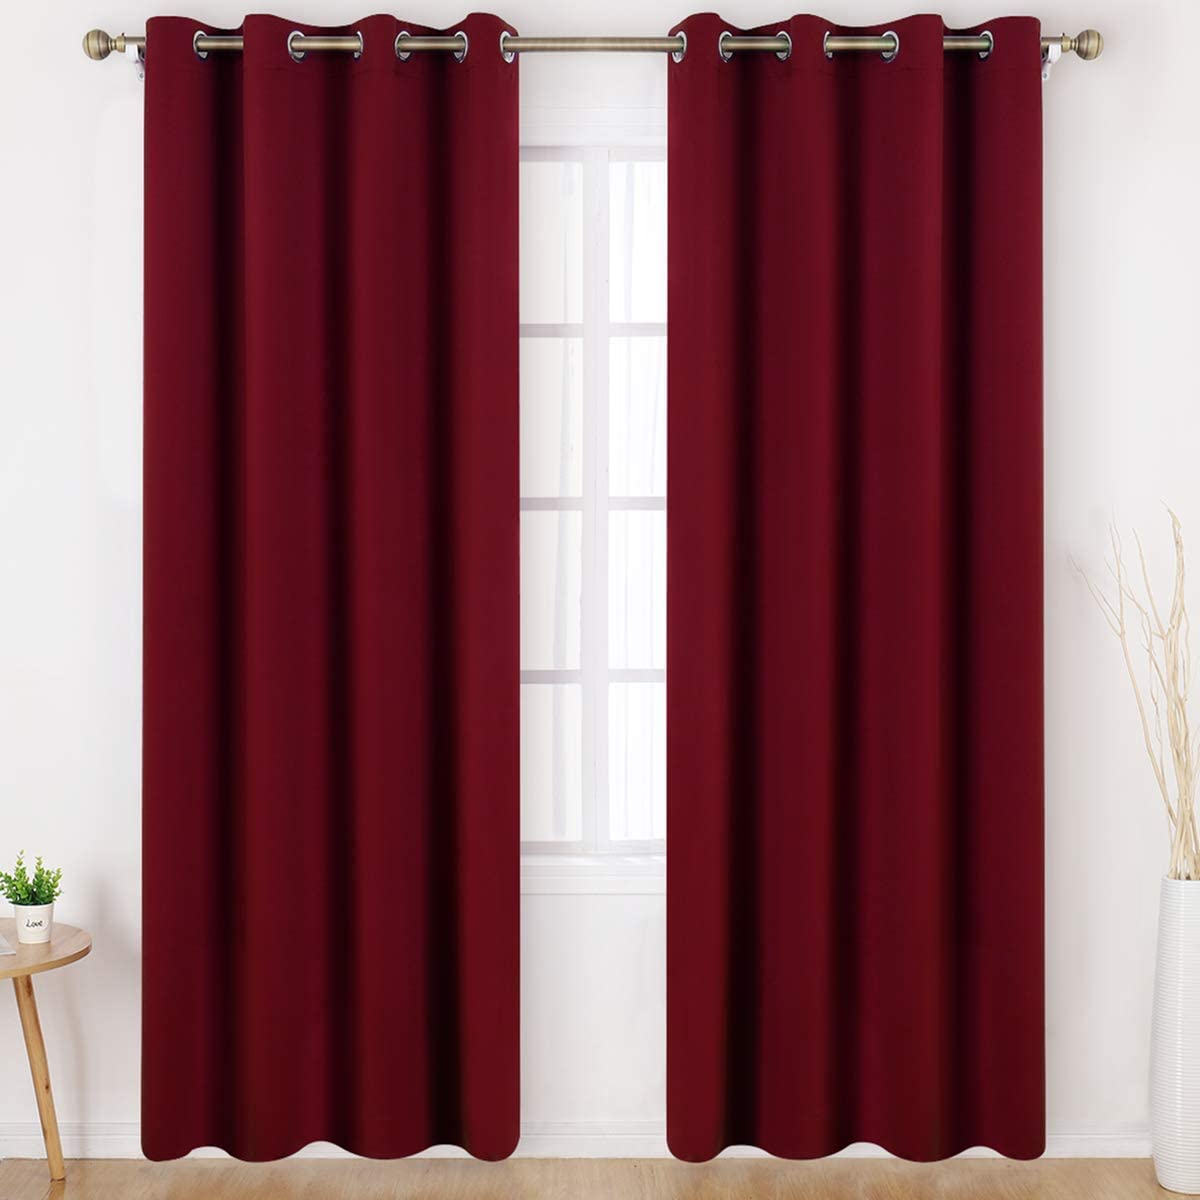 HOMEIDEAS Blackout Curtains Wide 52 X 95 inches Long Set of 2 Panels Burgundy Red Room Darkening Curtains/Drapes, Thermal Insulated Grommet Window Curtains for Bedroom & Living Room